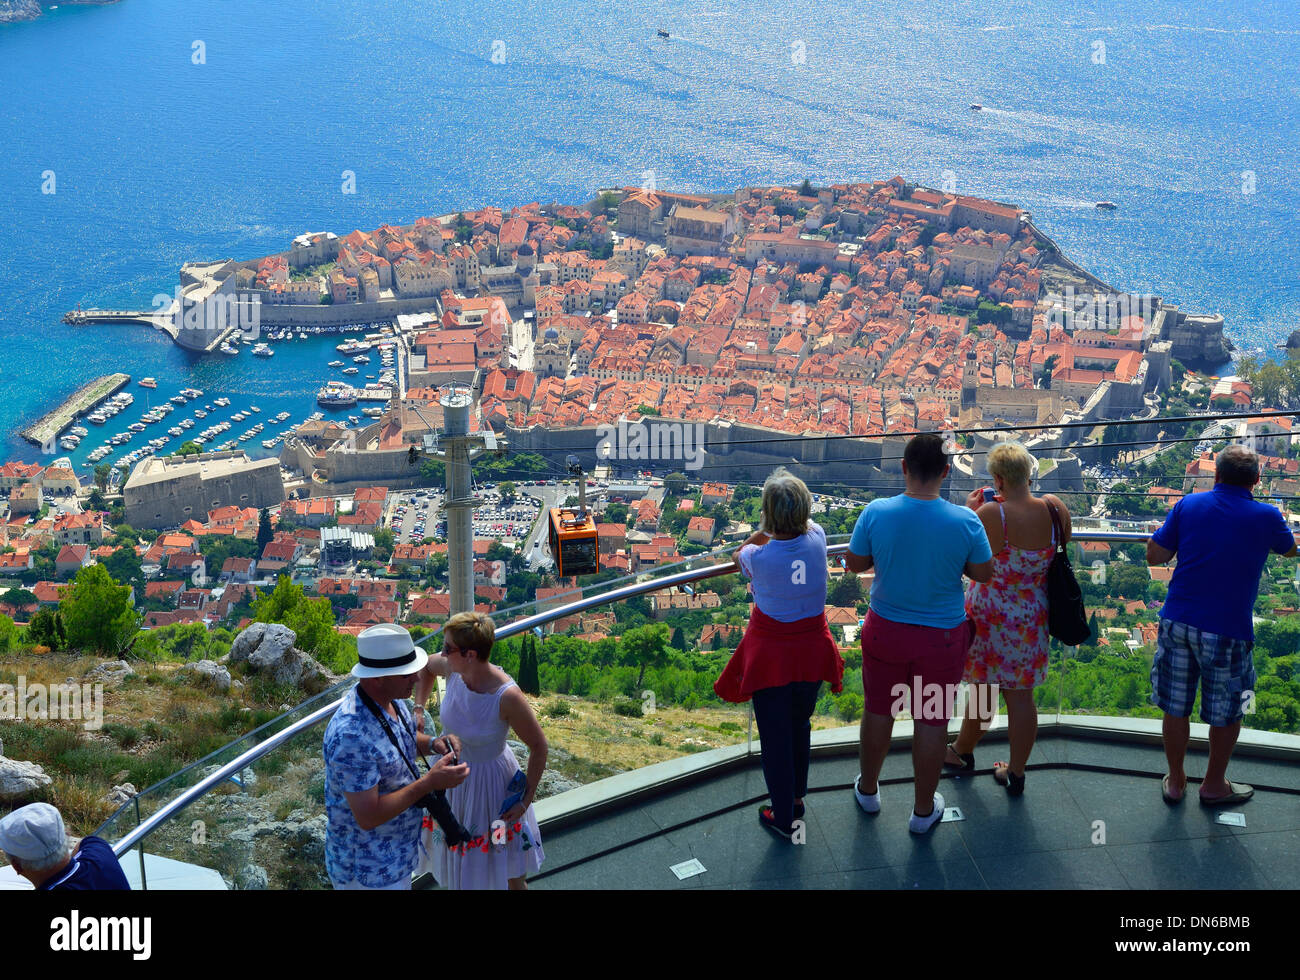 Dubrovnik - panoramic view looking down to the fortified walls of the city from the summit of Mount Srd,next to  the Dubrovnik cable car, Croatia - Stock Image